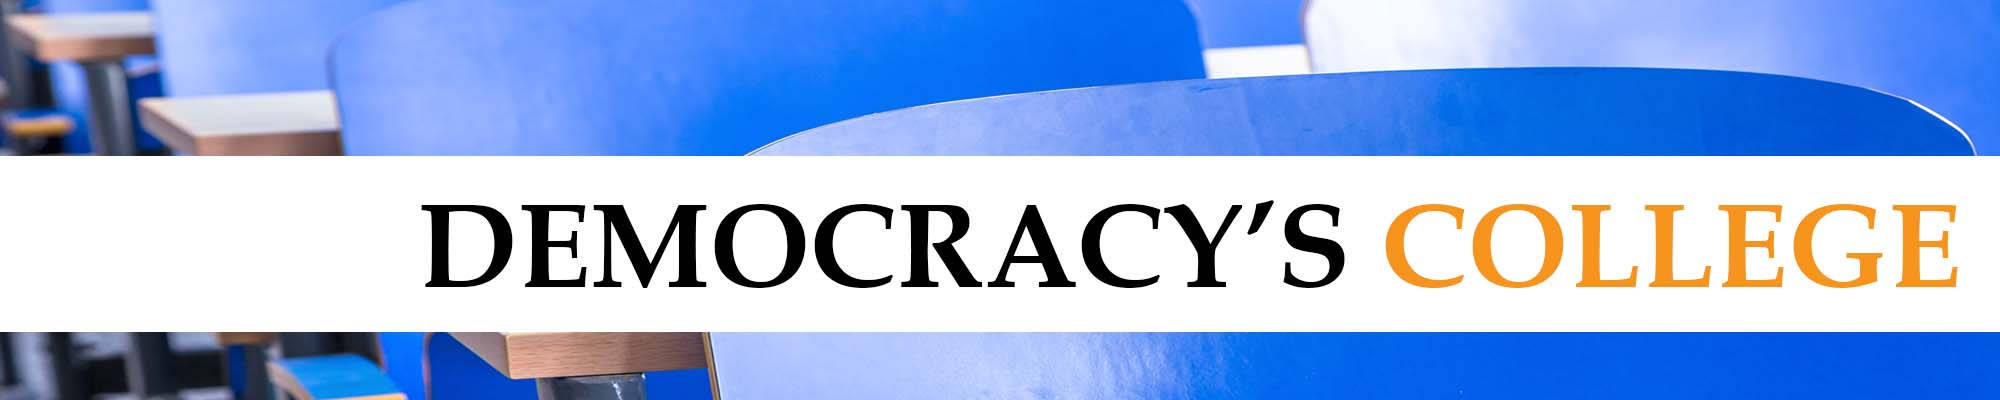 Podcast banner - Democracy's College